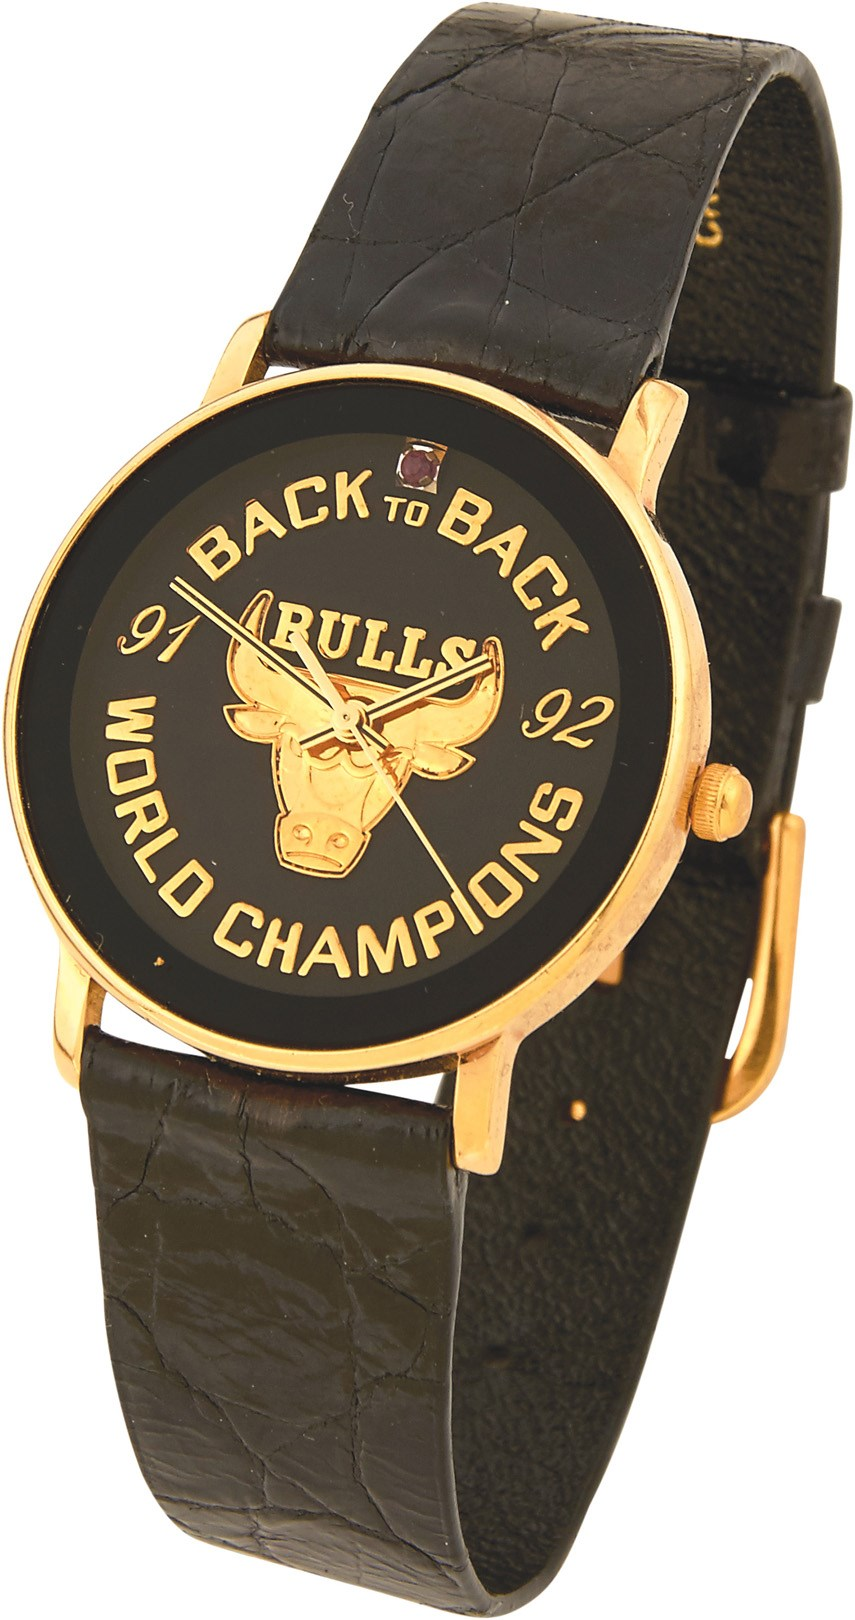 1991-92 Horace Grant Chicago Bulls Back to Back Championship Watch